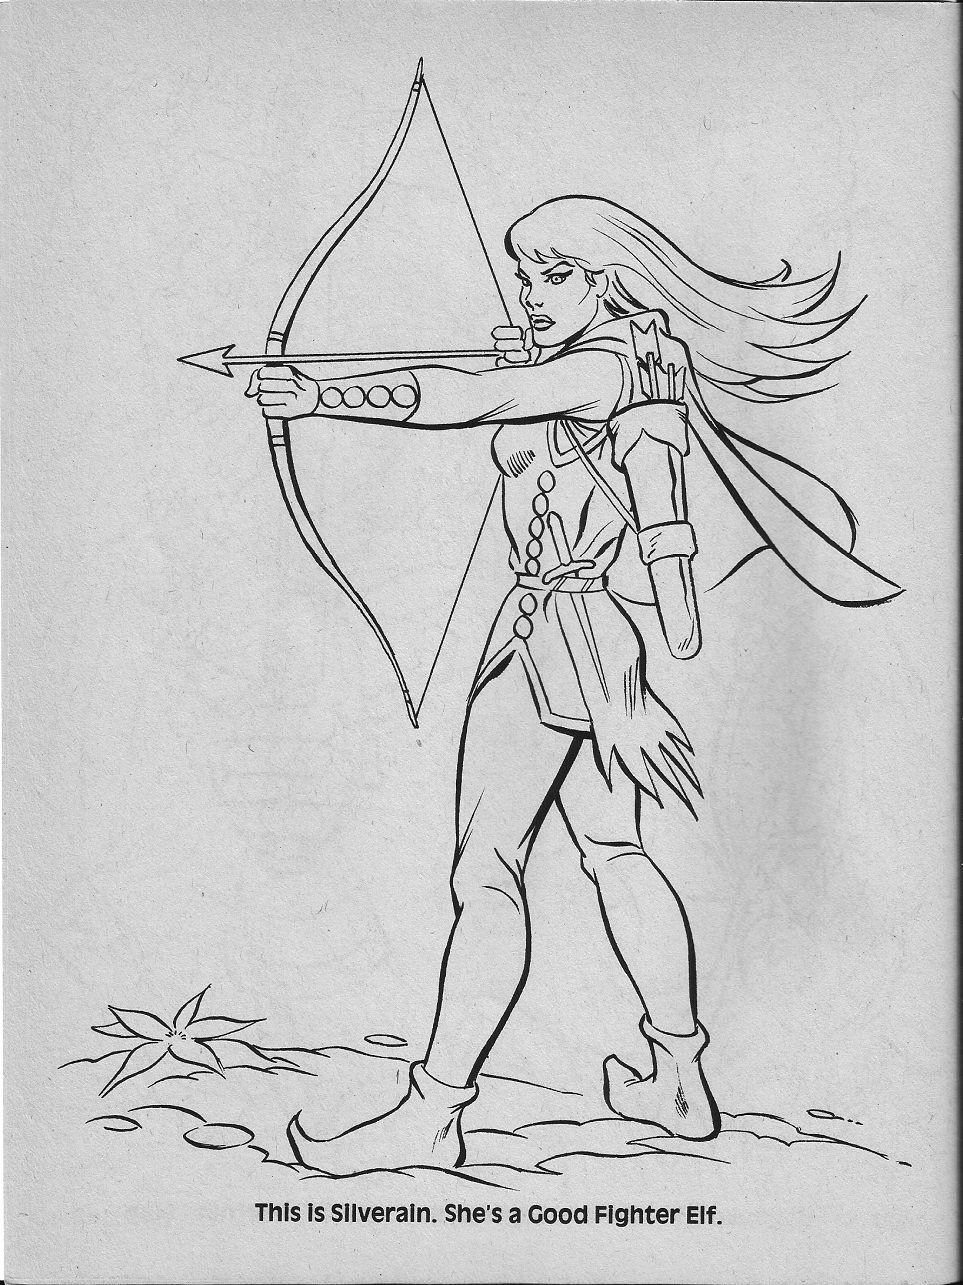 Dungeons And Dragons Coloring Book Awesome Pin By Susie Petri On Advanced Dungeons Dragons King Coloring Book Coloring Books Detailed Coloring Pages